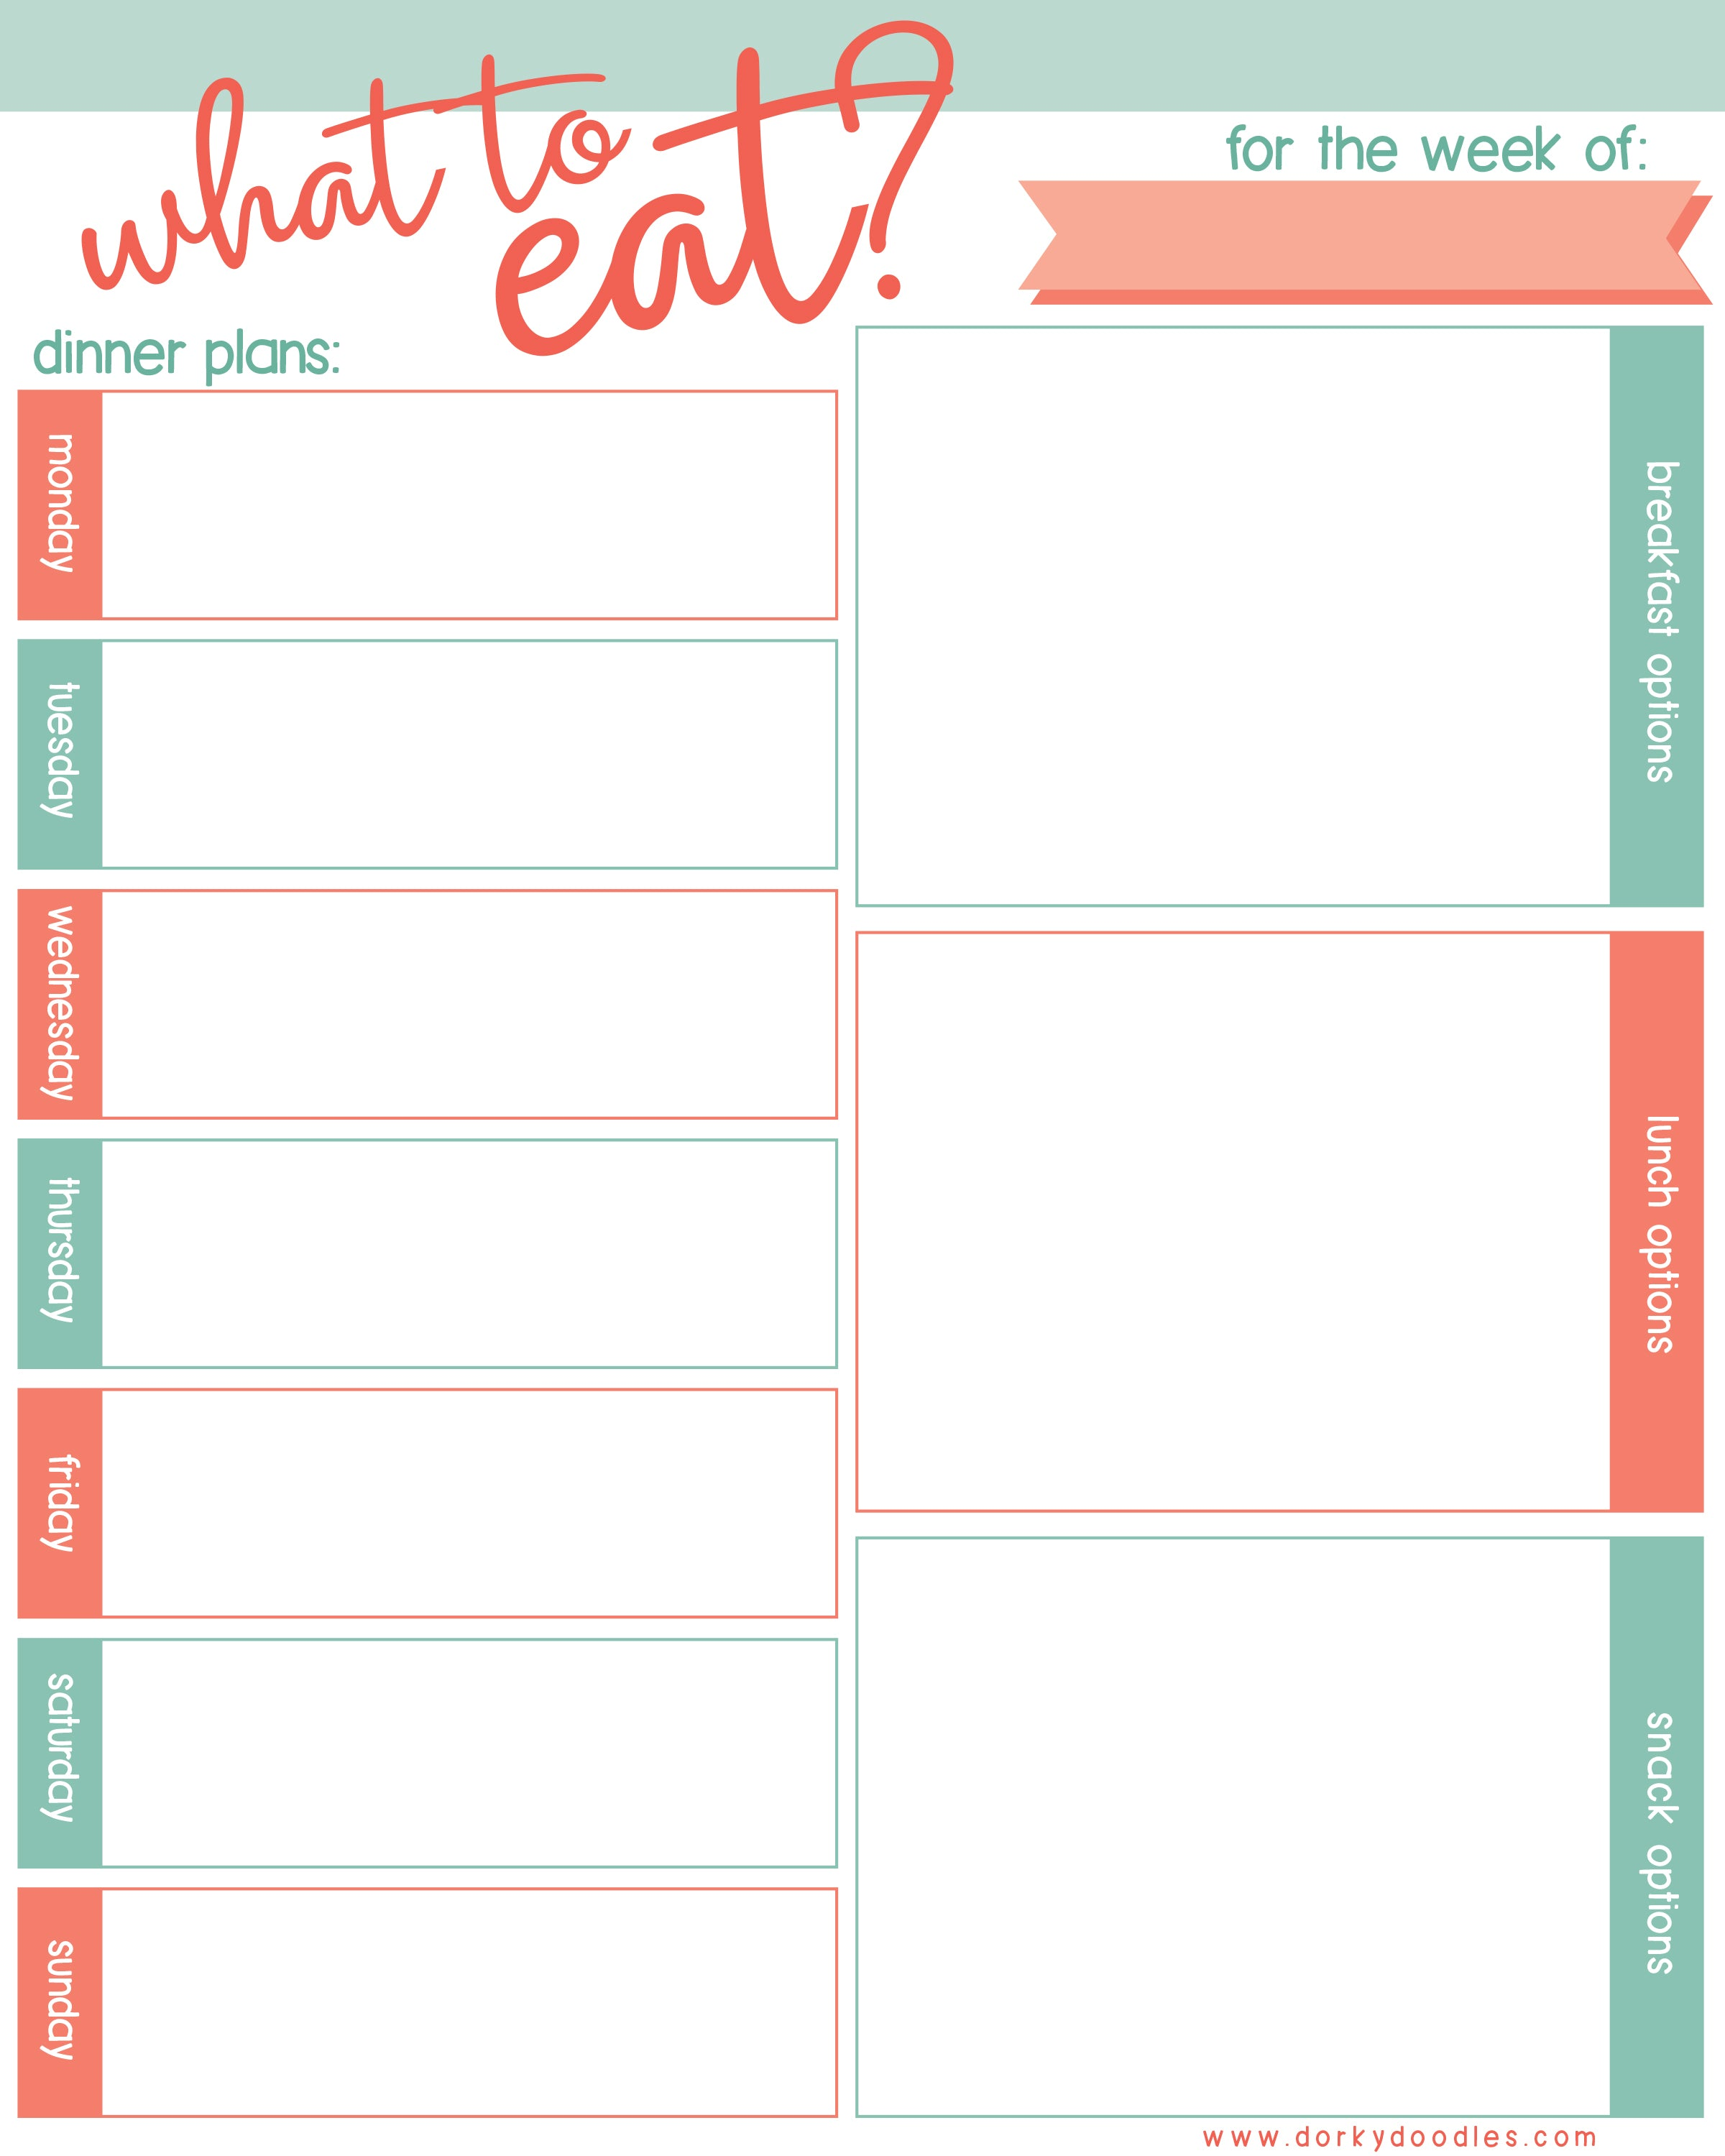 photo about Weekly Meal Planning Printable known as Weekly Supper Planner Printable Dorky Doodles